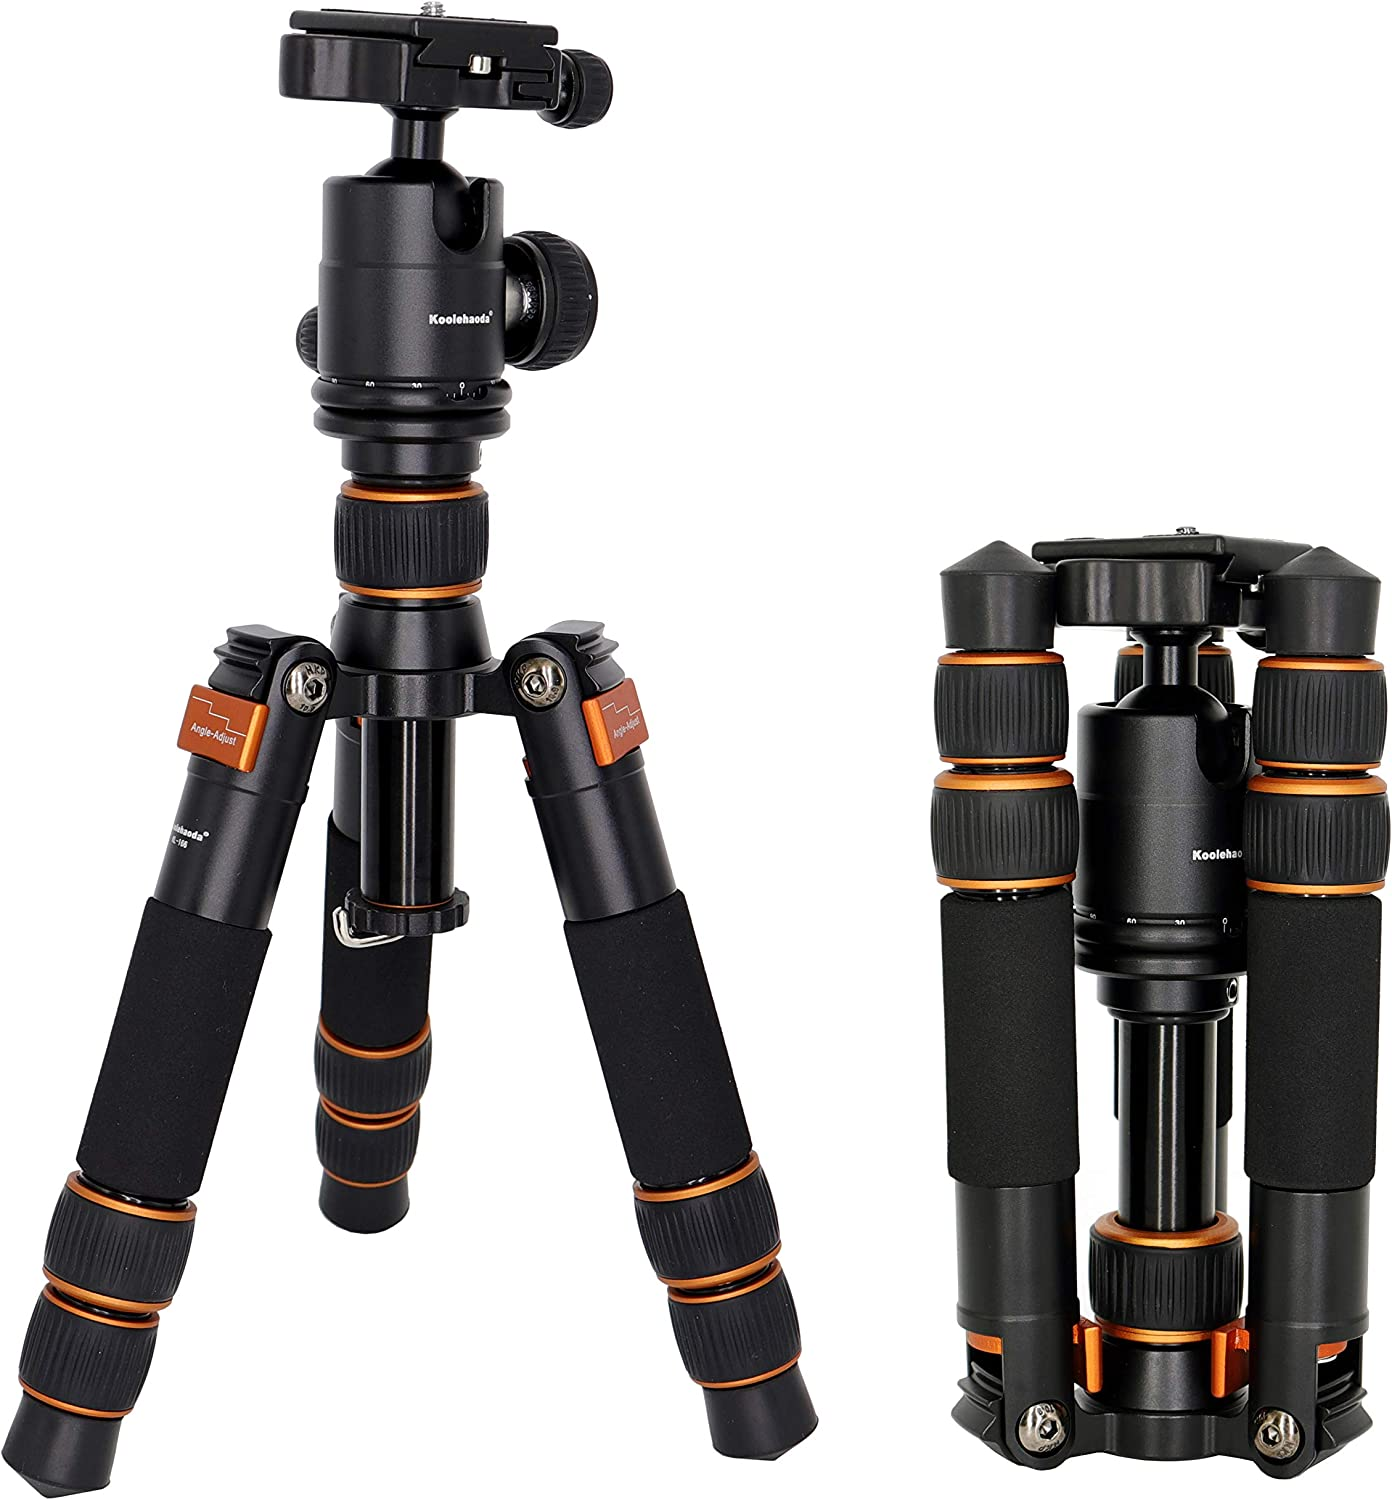 koolehaoda SL-166 Travel Portable Mini Tripod with Ball Head for DSLR Camera (SL-166 Mini triod) Orange